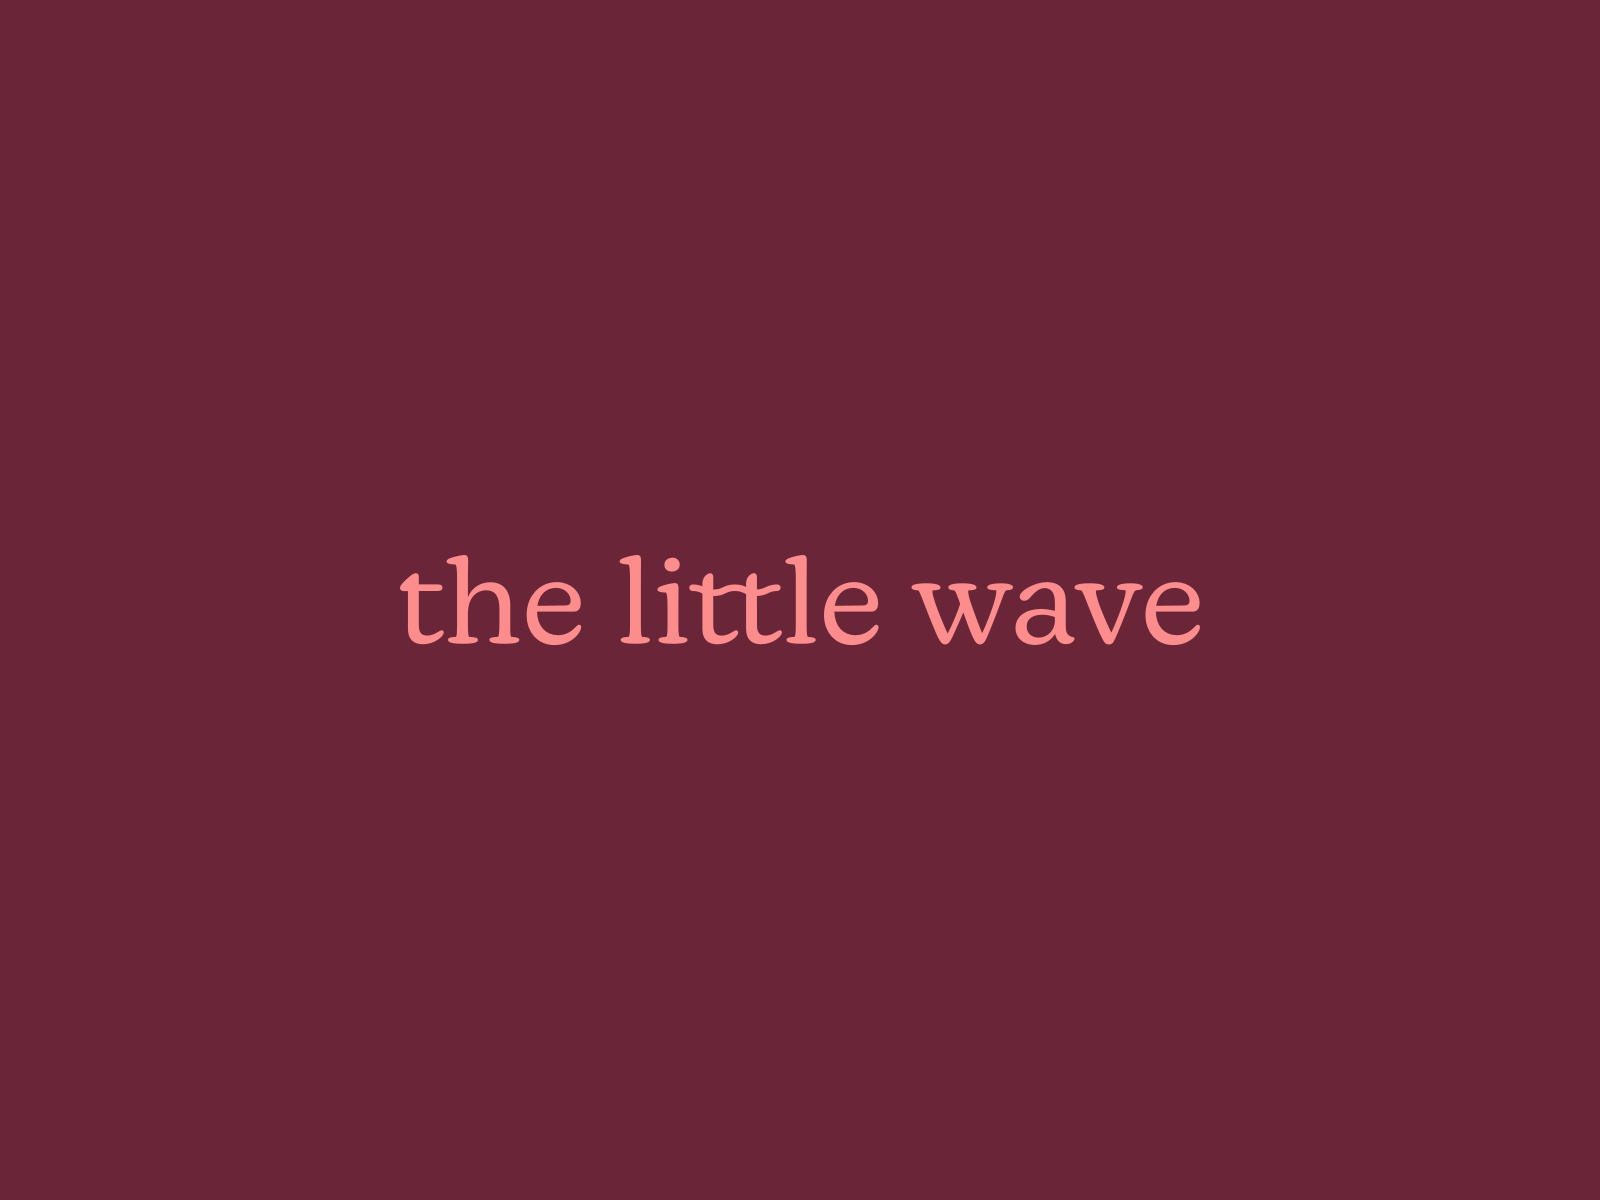 The Little Wave: Word mark